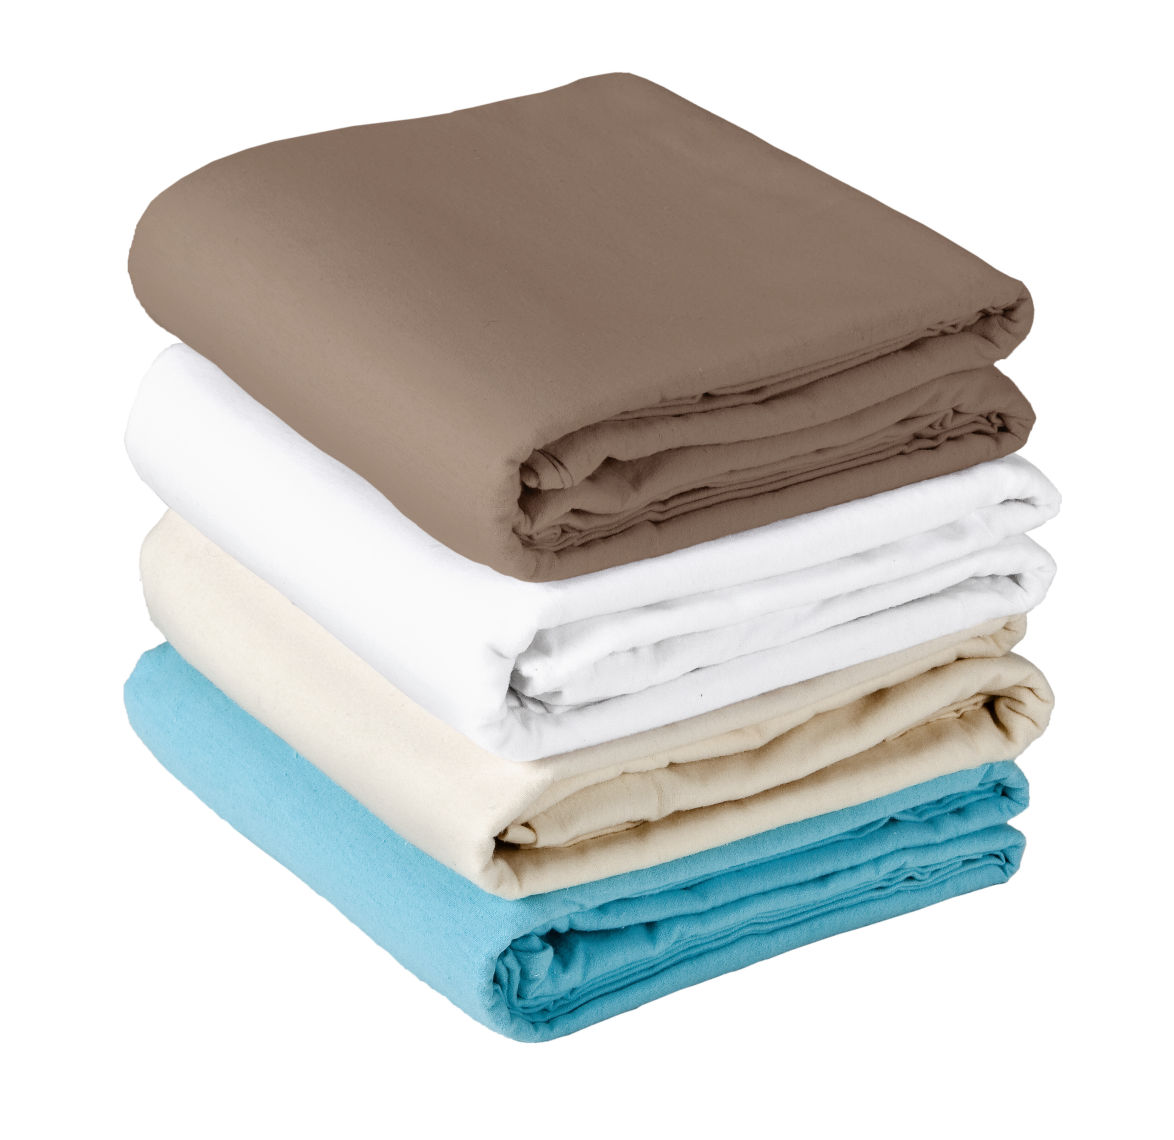 Samadhi Pro Flannel Sheet Set